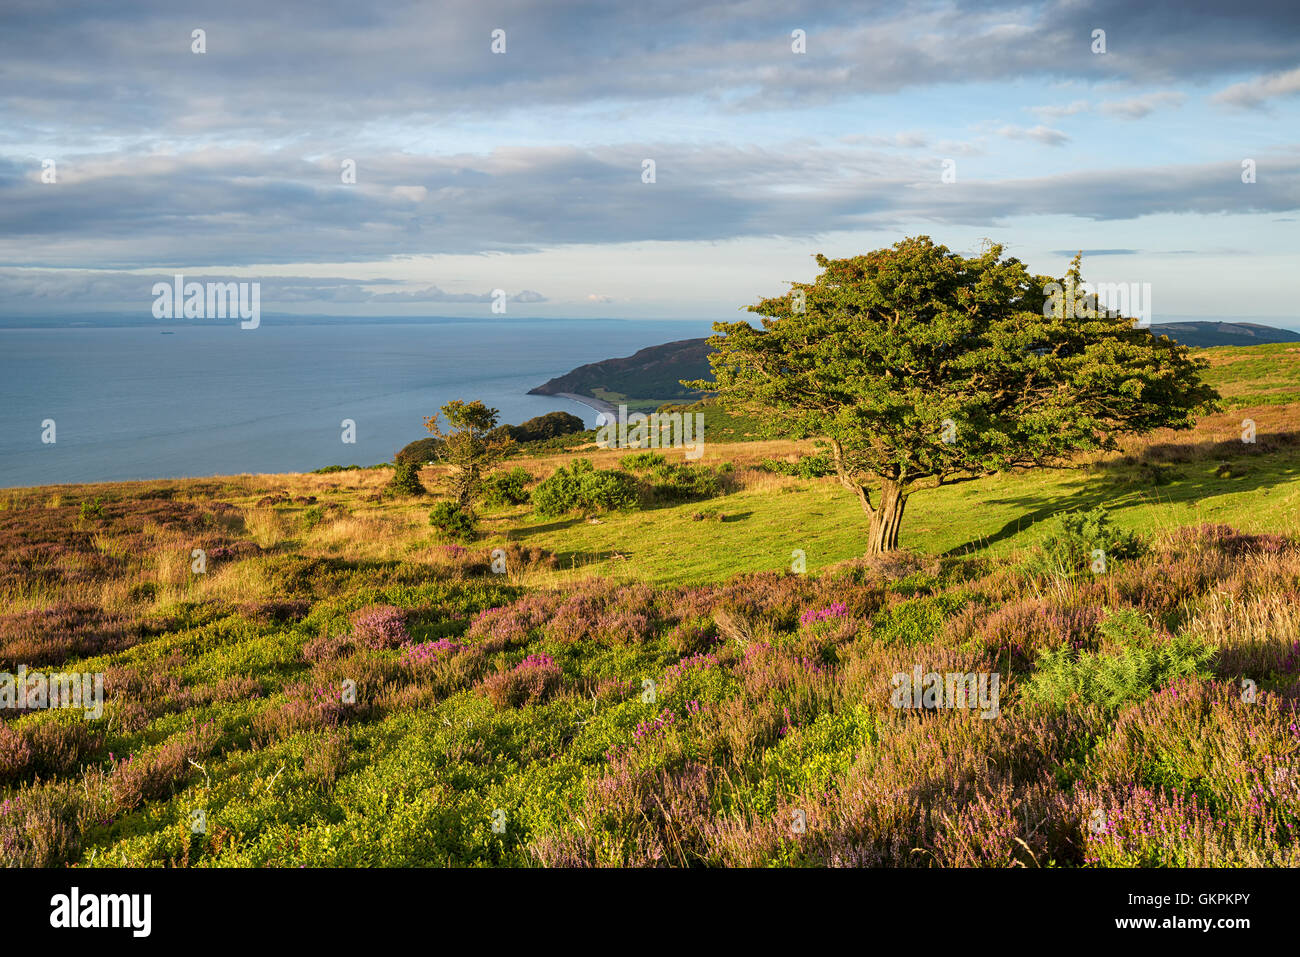 A gnarled old hawthorn tree groing on Porlock Common on the Somerset coast - Stock Image